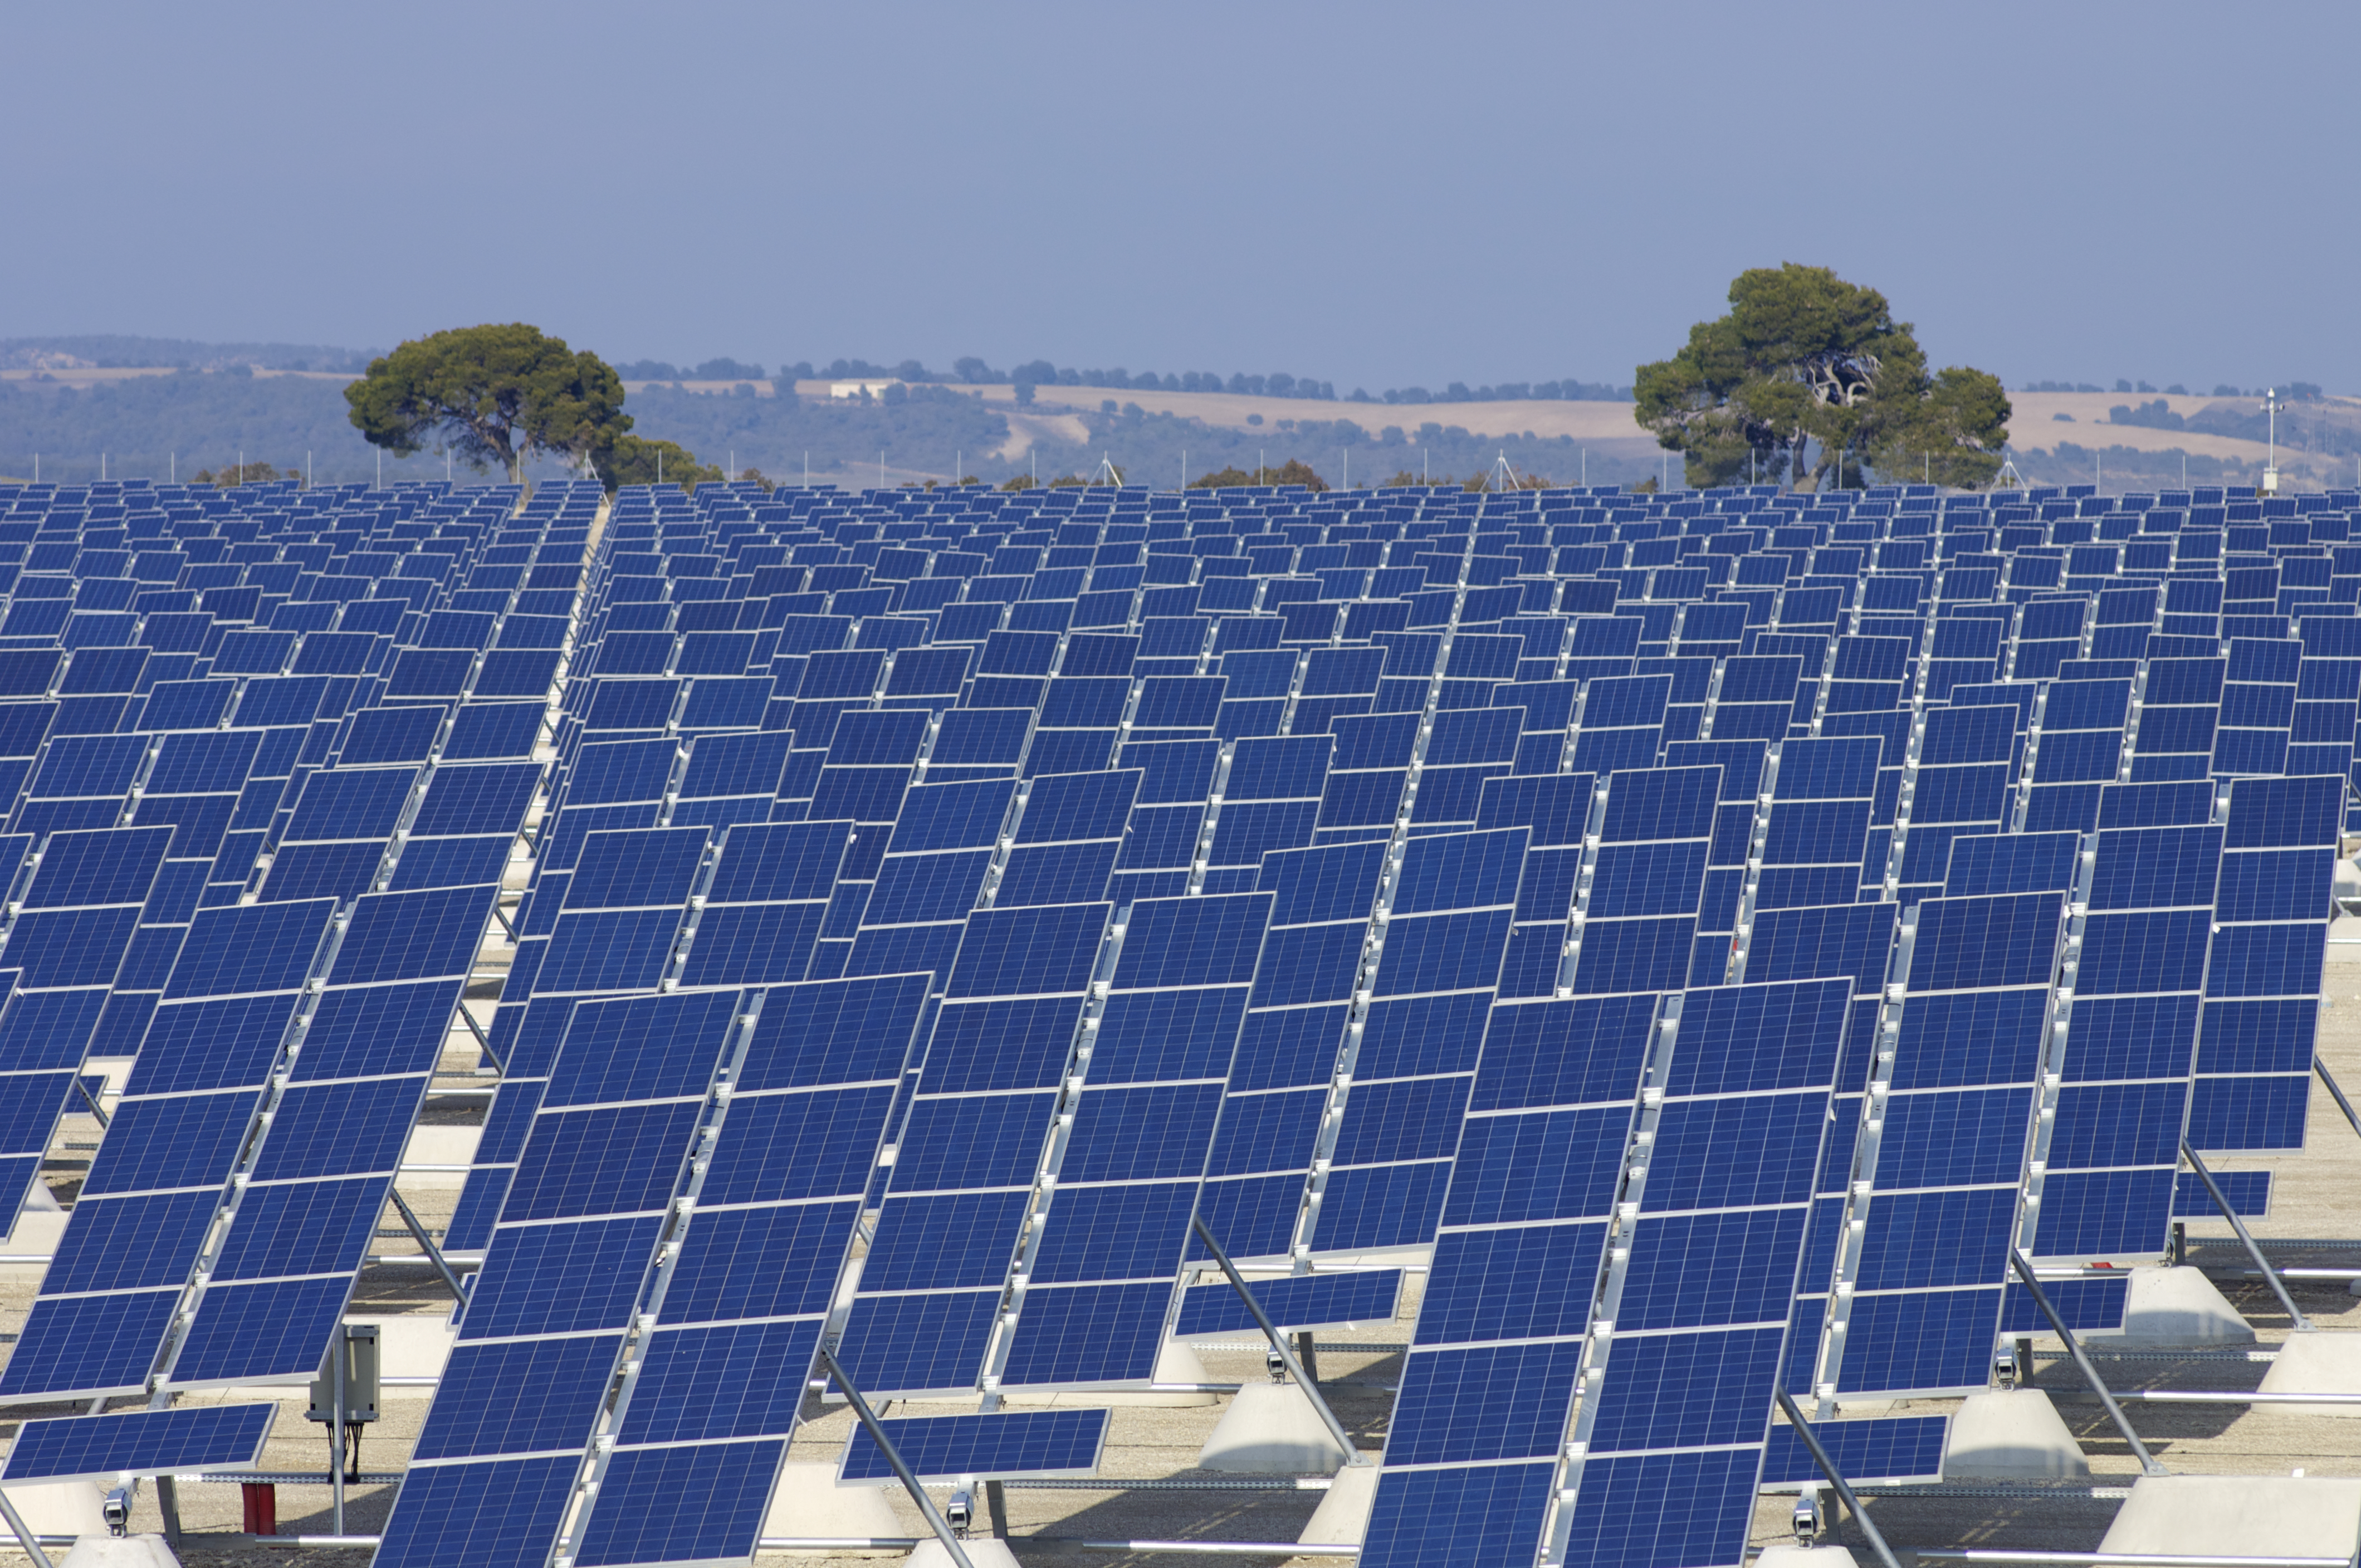 Silver and Solar Technology - The Silver Institute